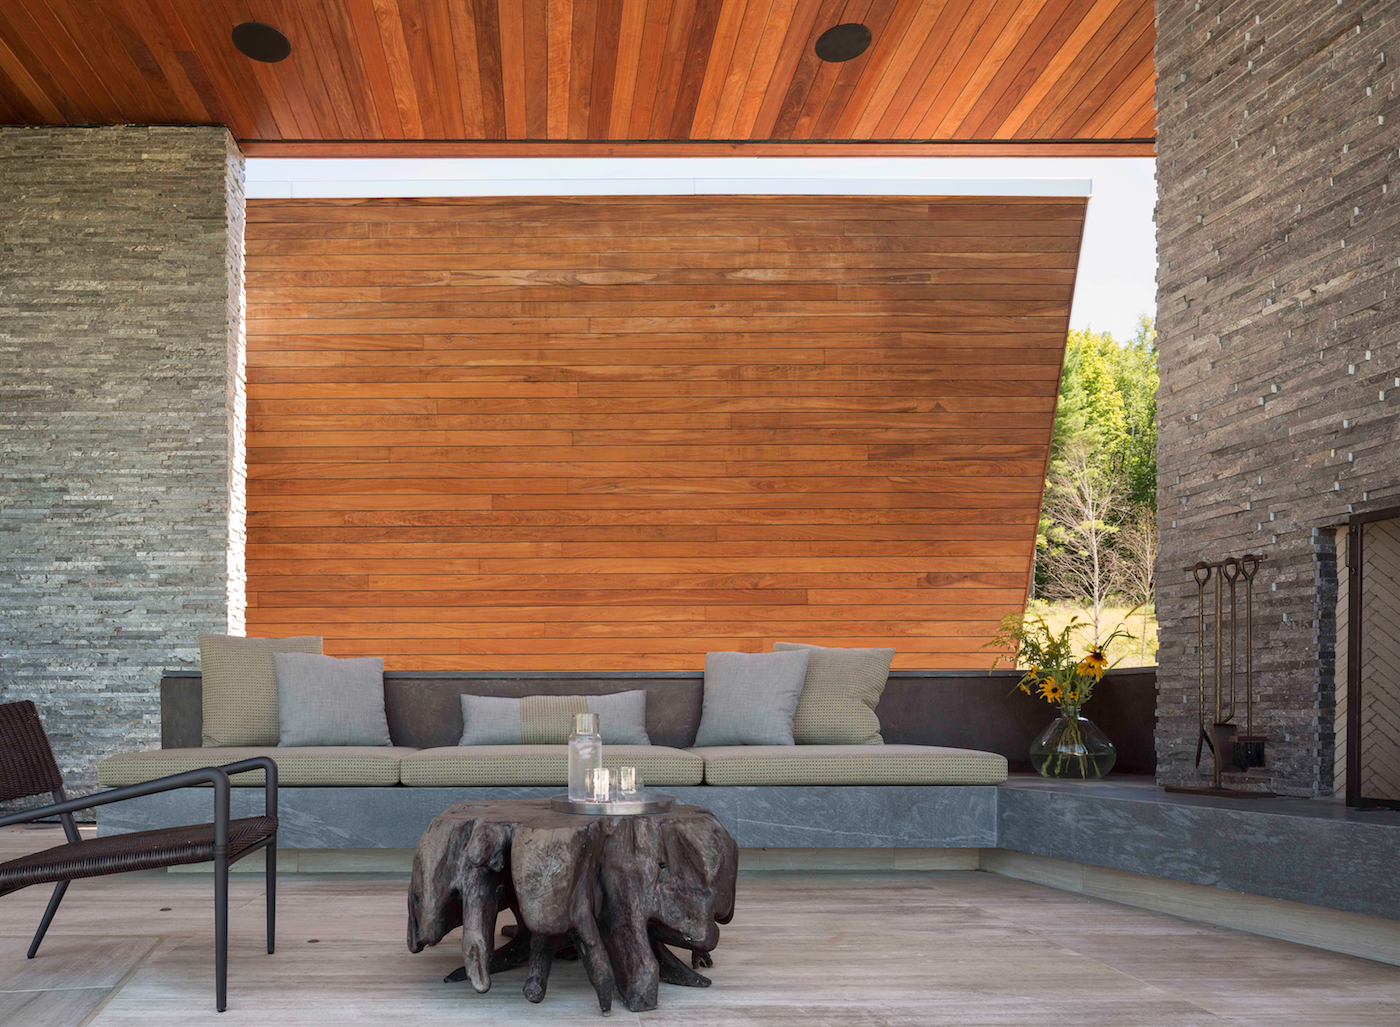 Outdoor, Back Yard, and Wood Patio, Porch, Deck  Taghkanic House by Hariri & Hariri Architecture